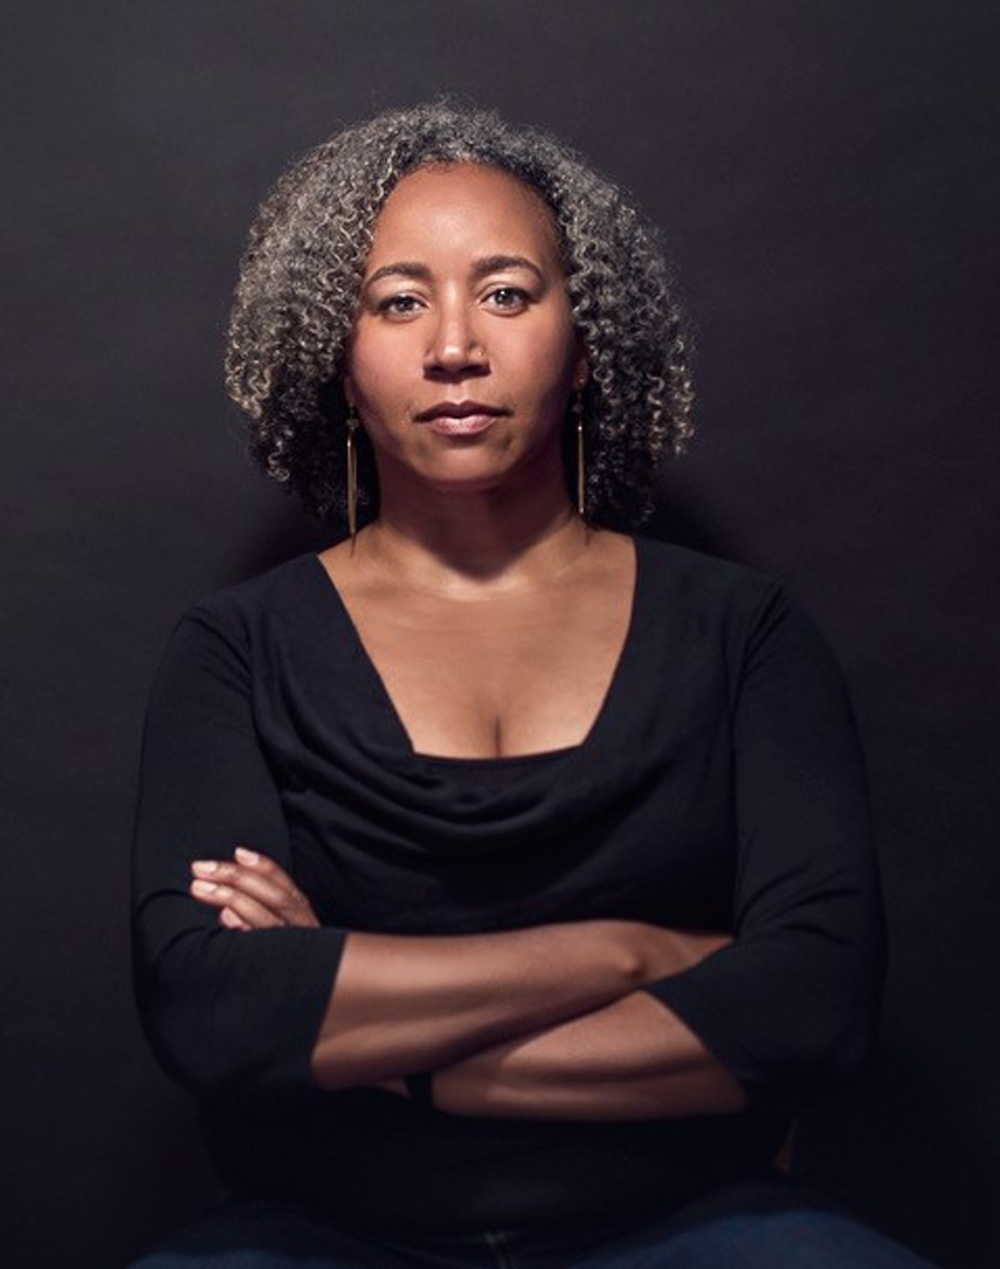 """Mia Birdsong is an activist and the author of the book """"How we show up: Reclaiming Family, Friendship, and Community.""""  (Courtesy Nye Lyn Tho)"""